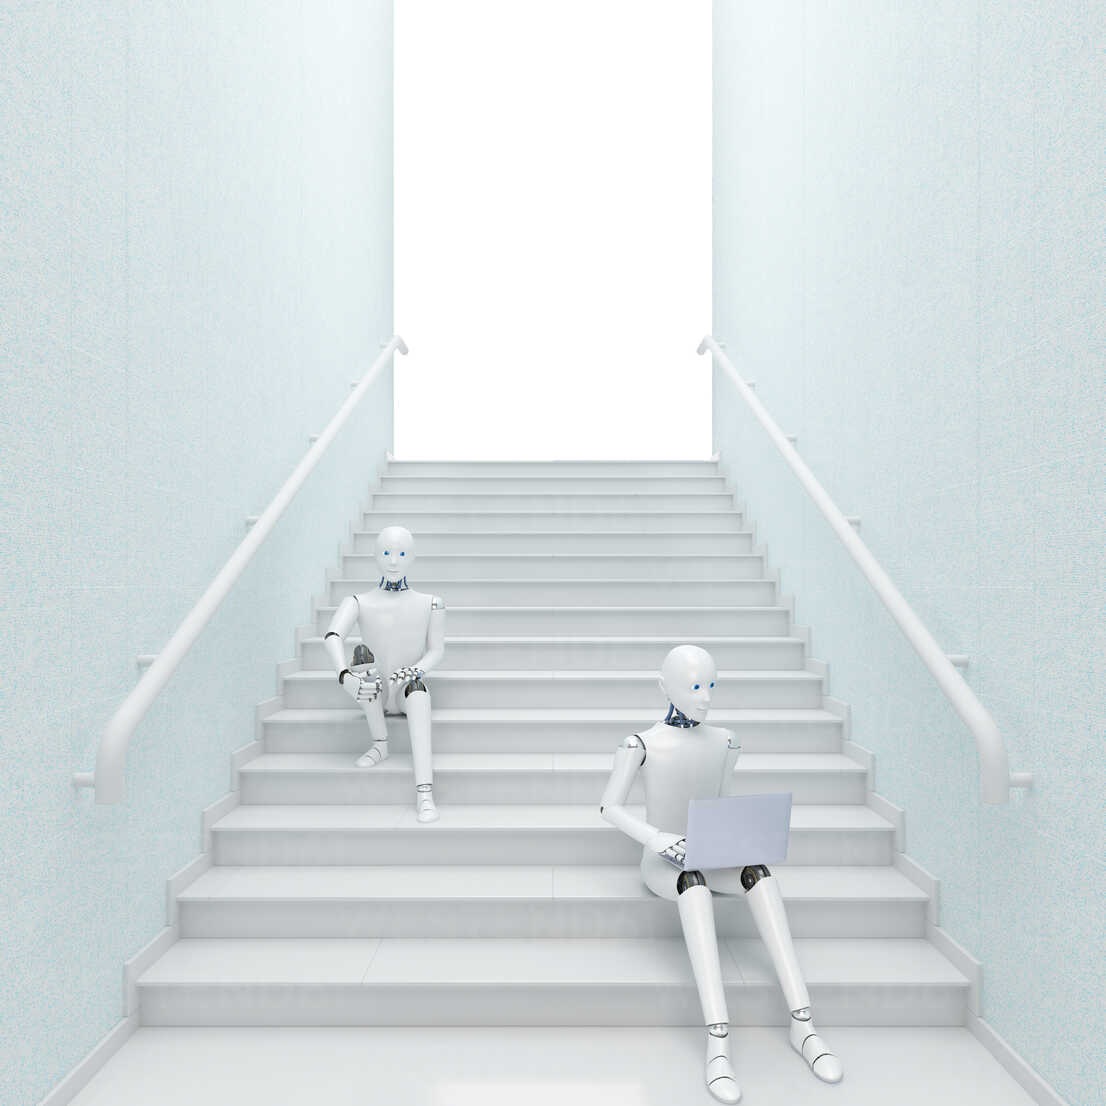 Robot sitting on stairs using laptop, 3d rendering - AHUF00390 - Anna Huber/Westend61